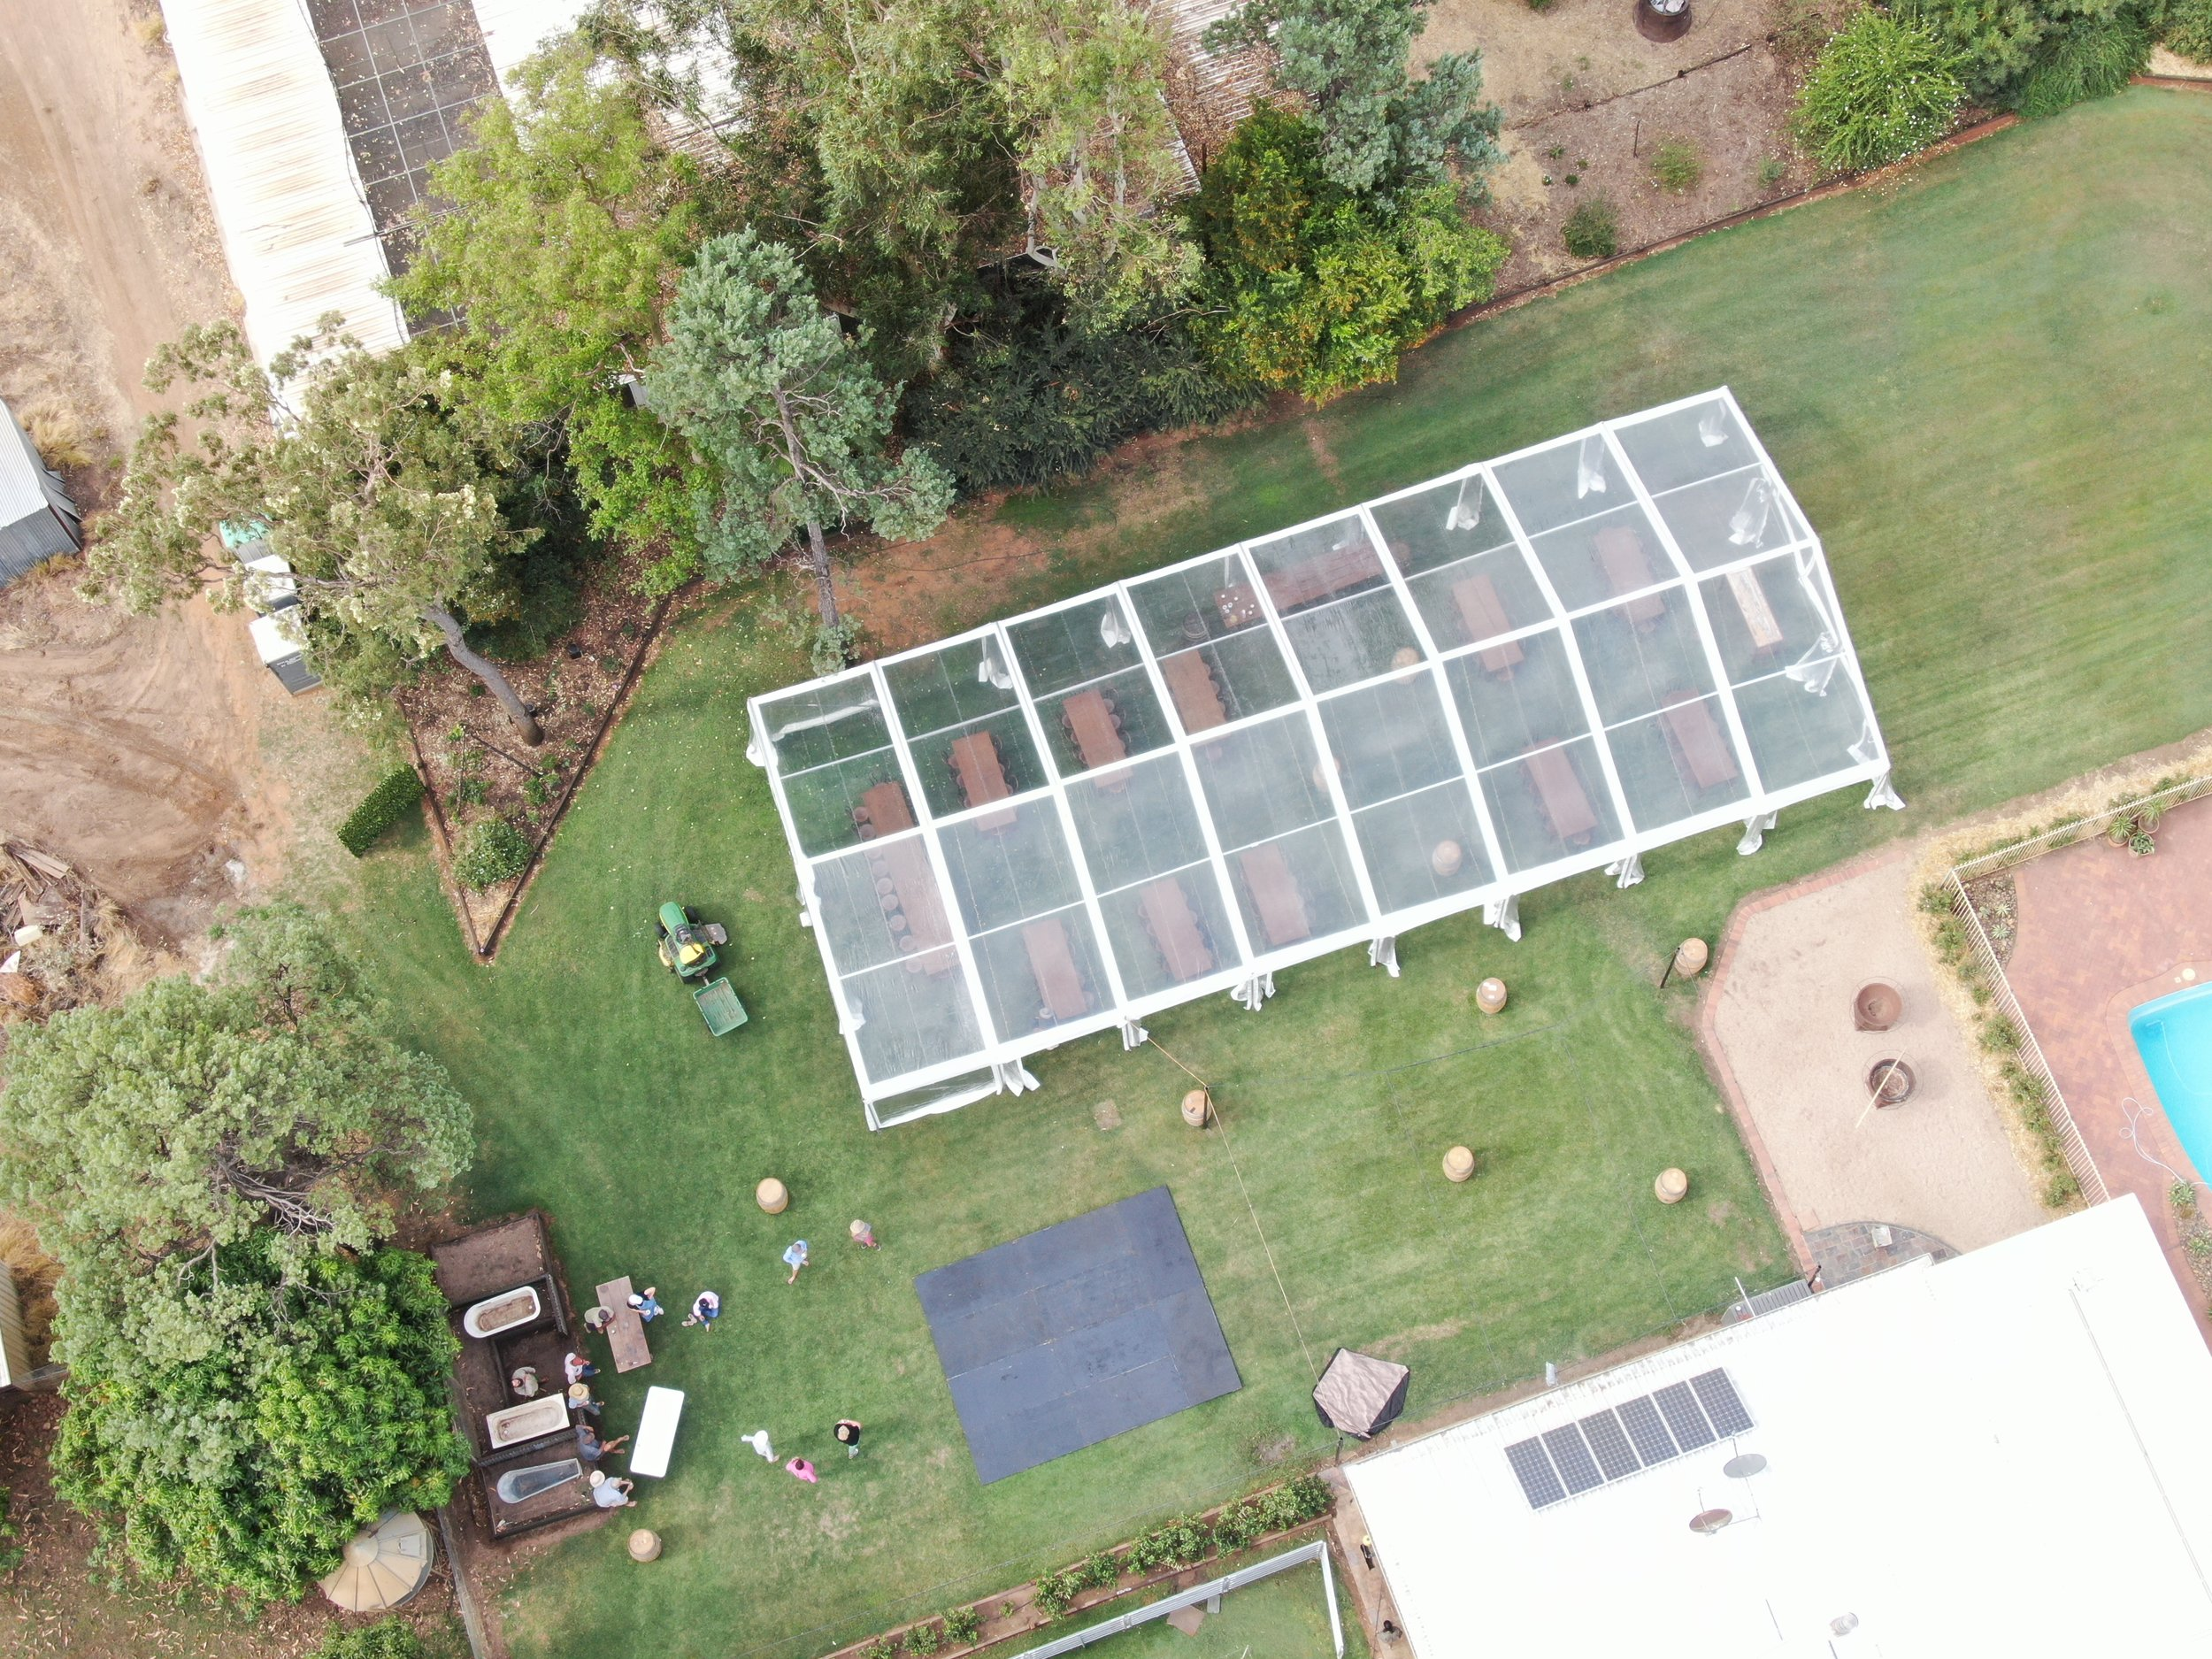 10 x 24m clear from above